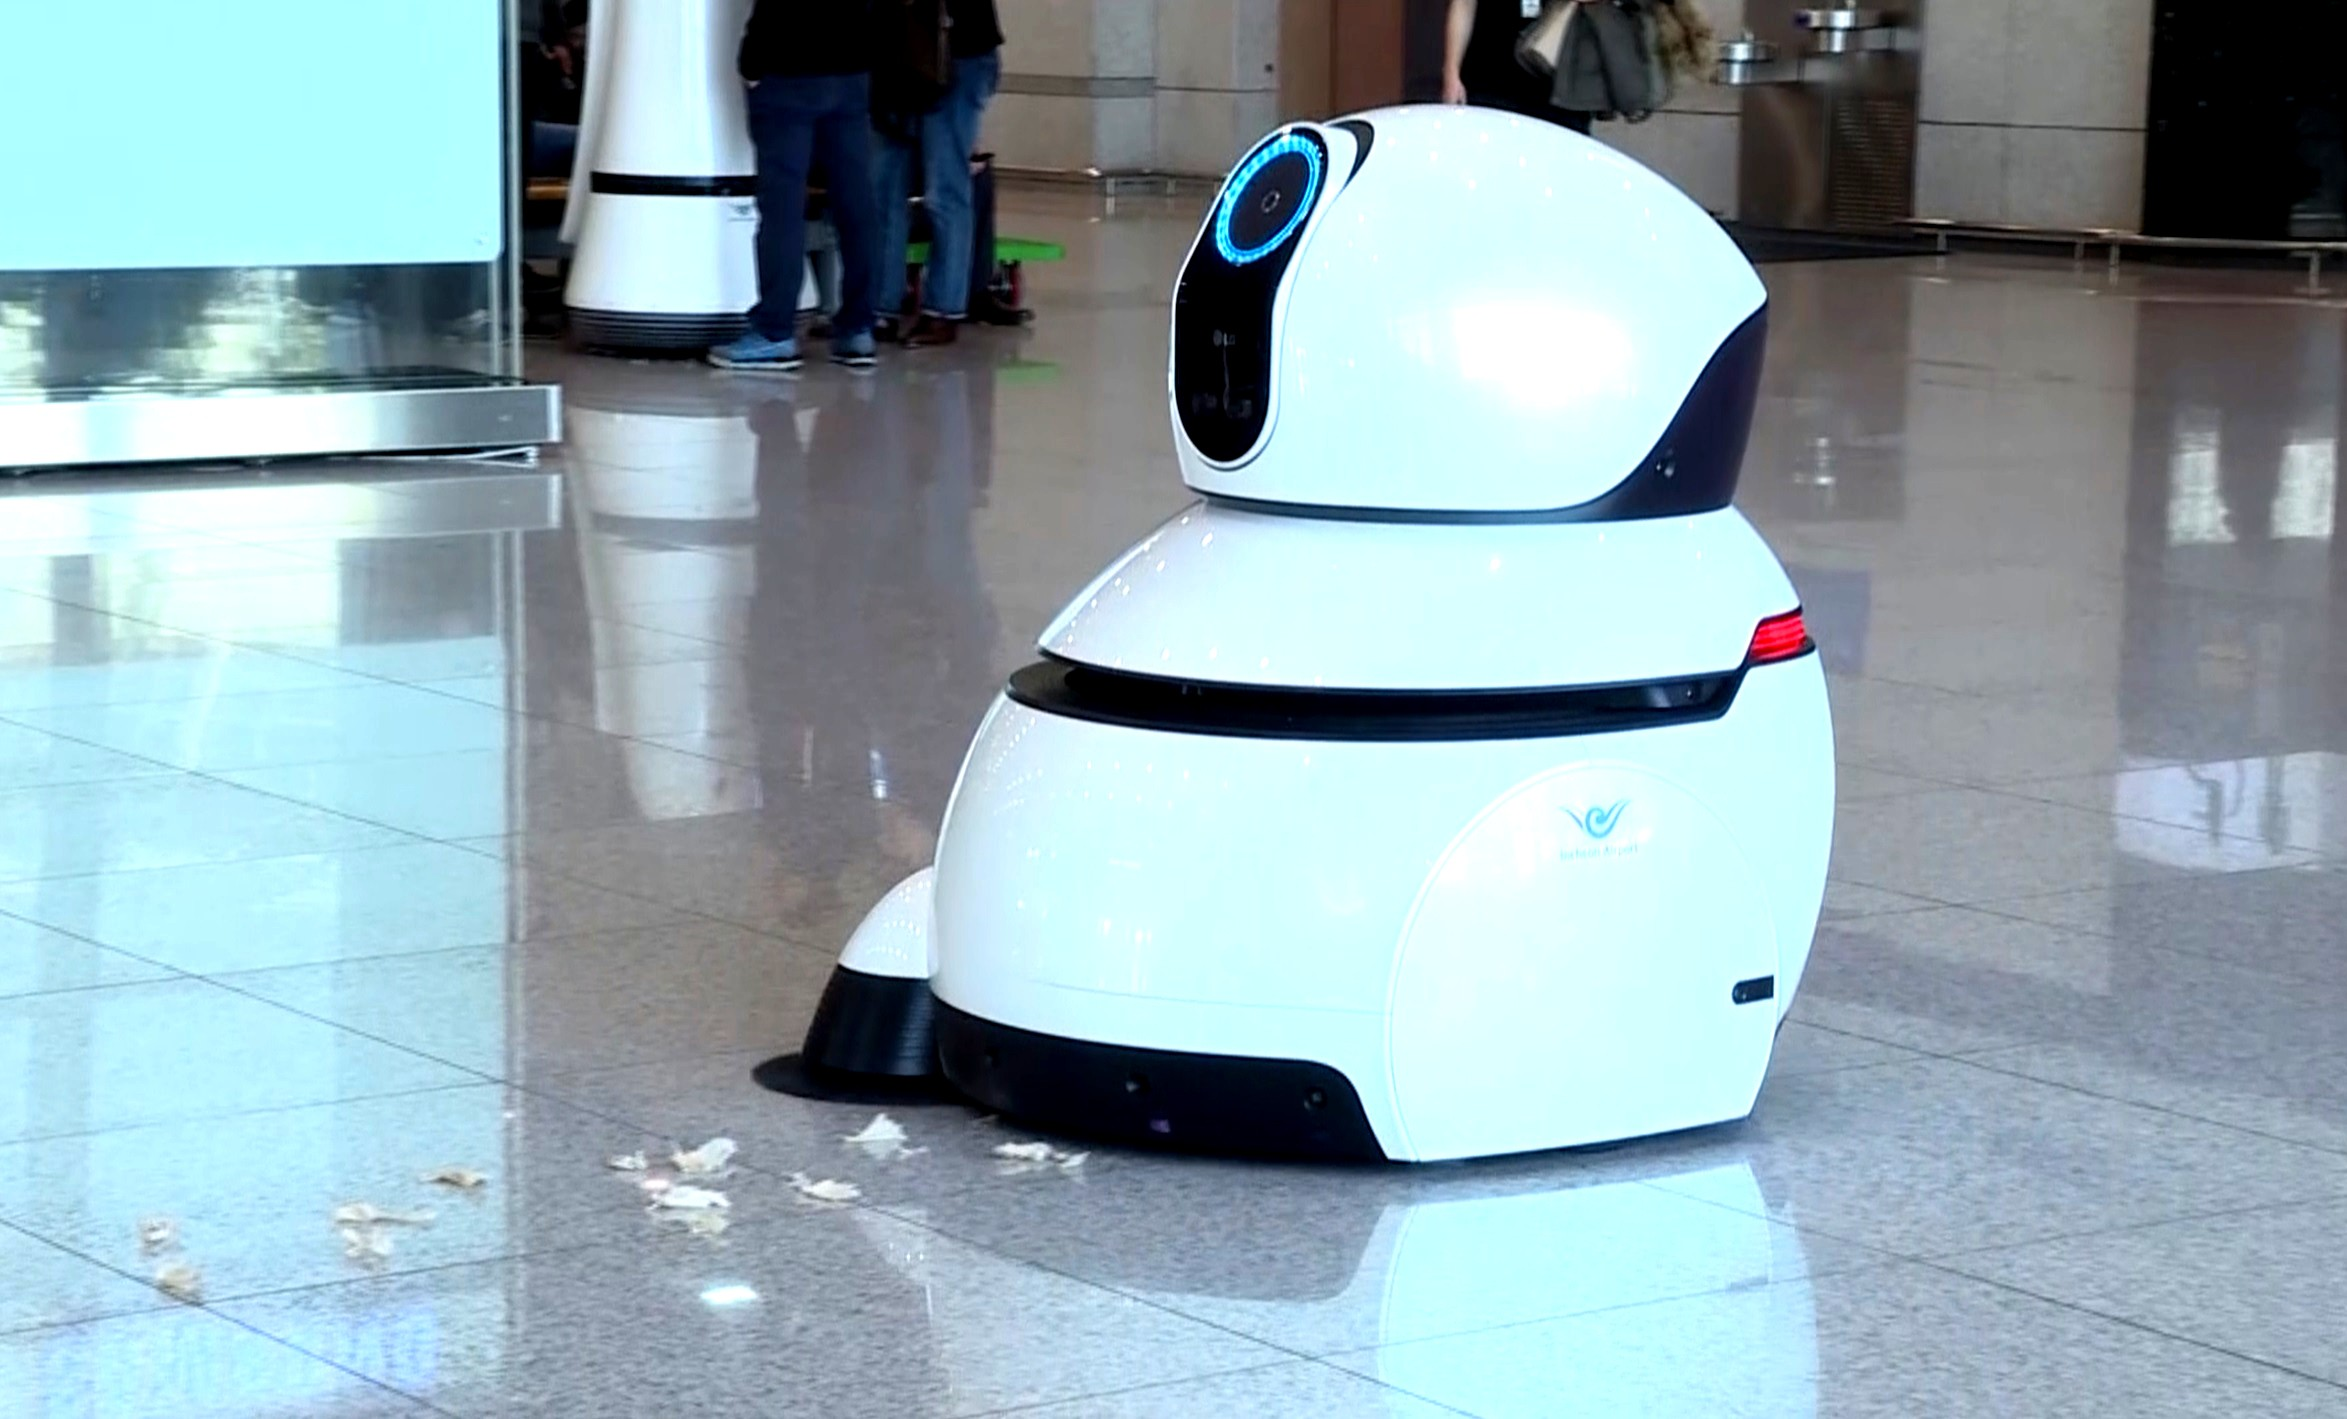 A side view of one of LG's Airport Cleaning Robots in action at the Incheon International Airport, Korea